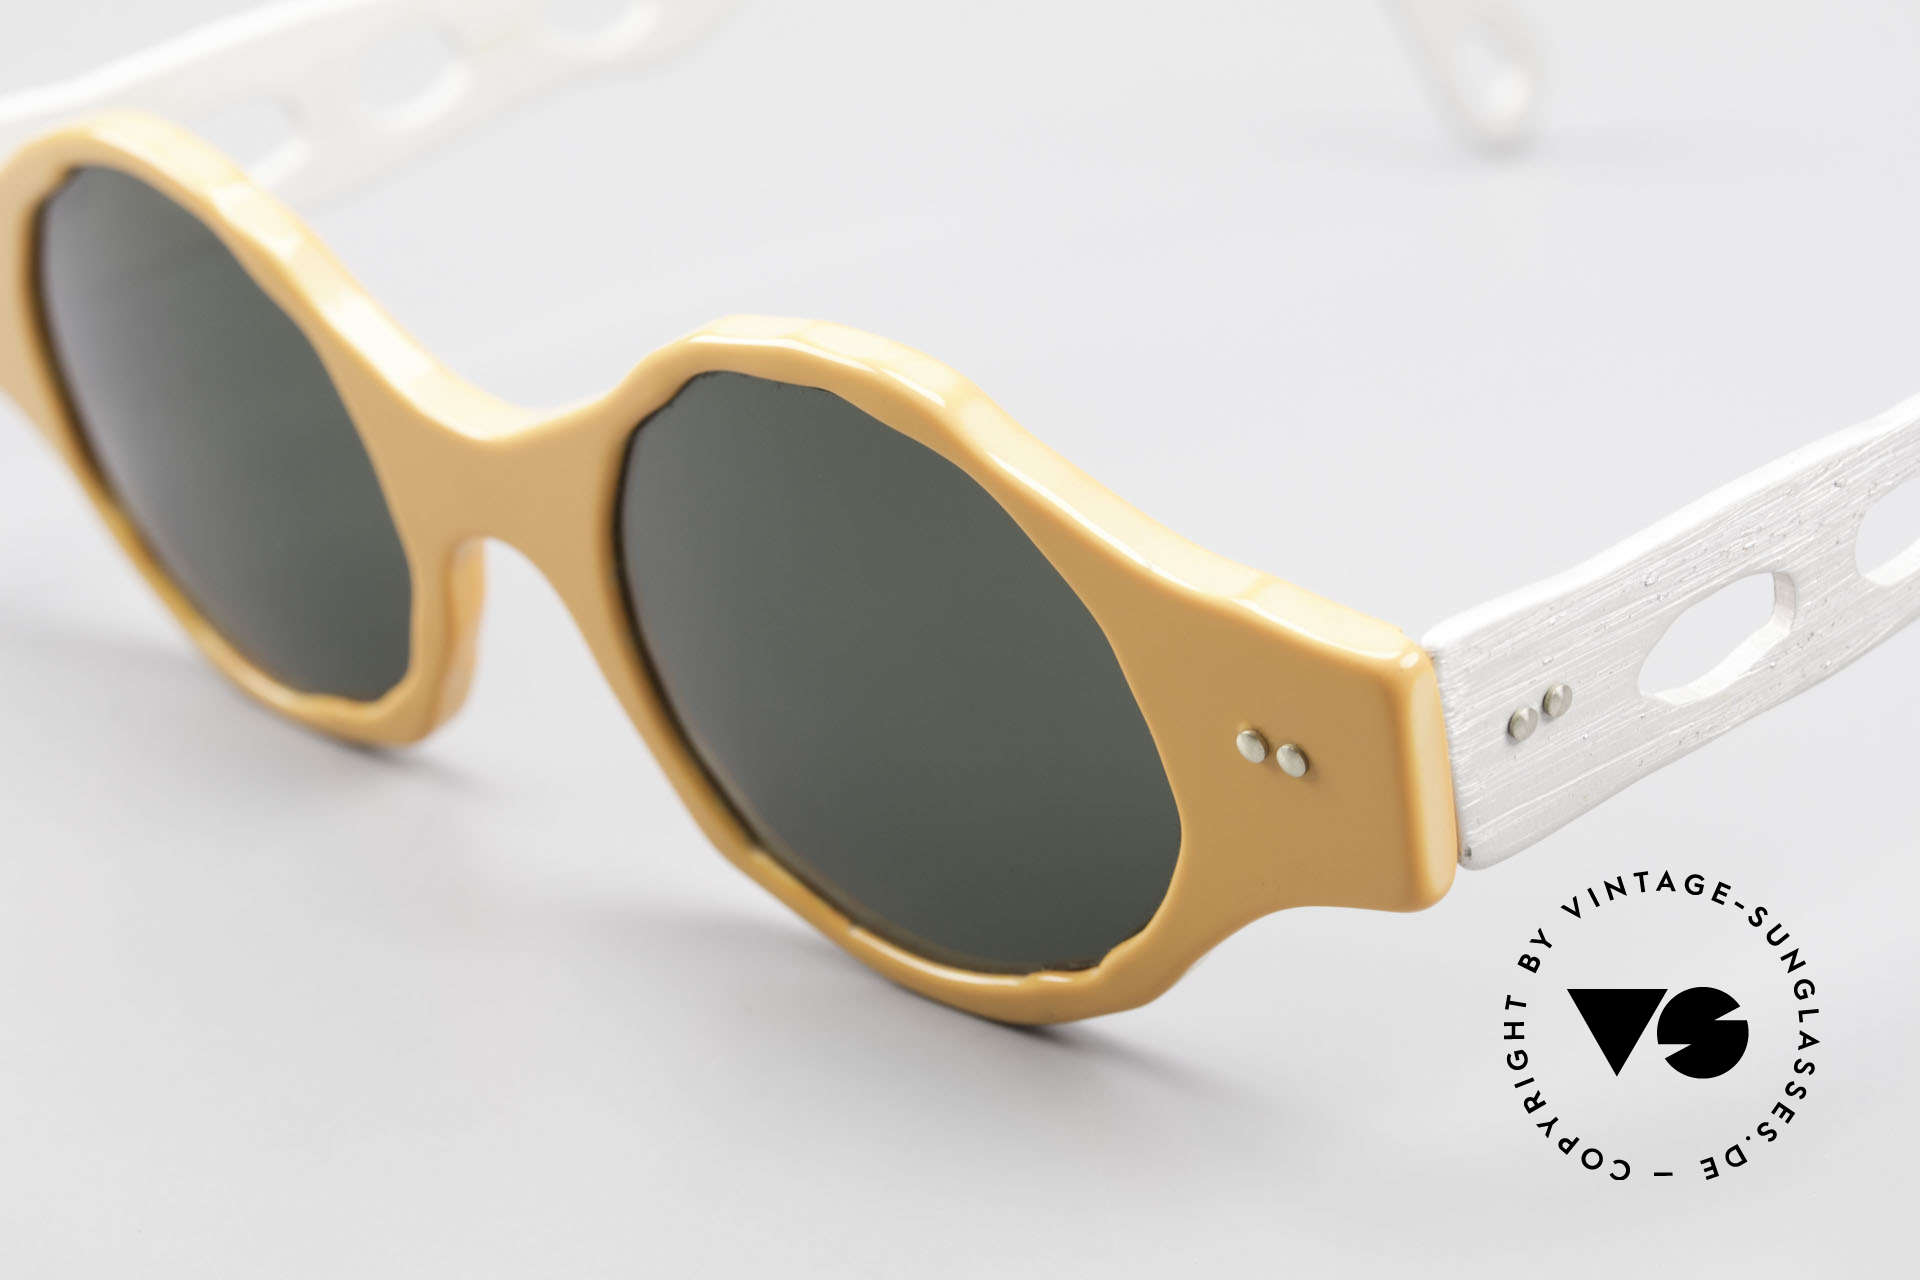 Theo Belgium Eye-Witness BK51 Avant-Garde Vintage Shades, the fancy 'Eye-Witness' series was launched in May '95, Made for Men and Women